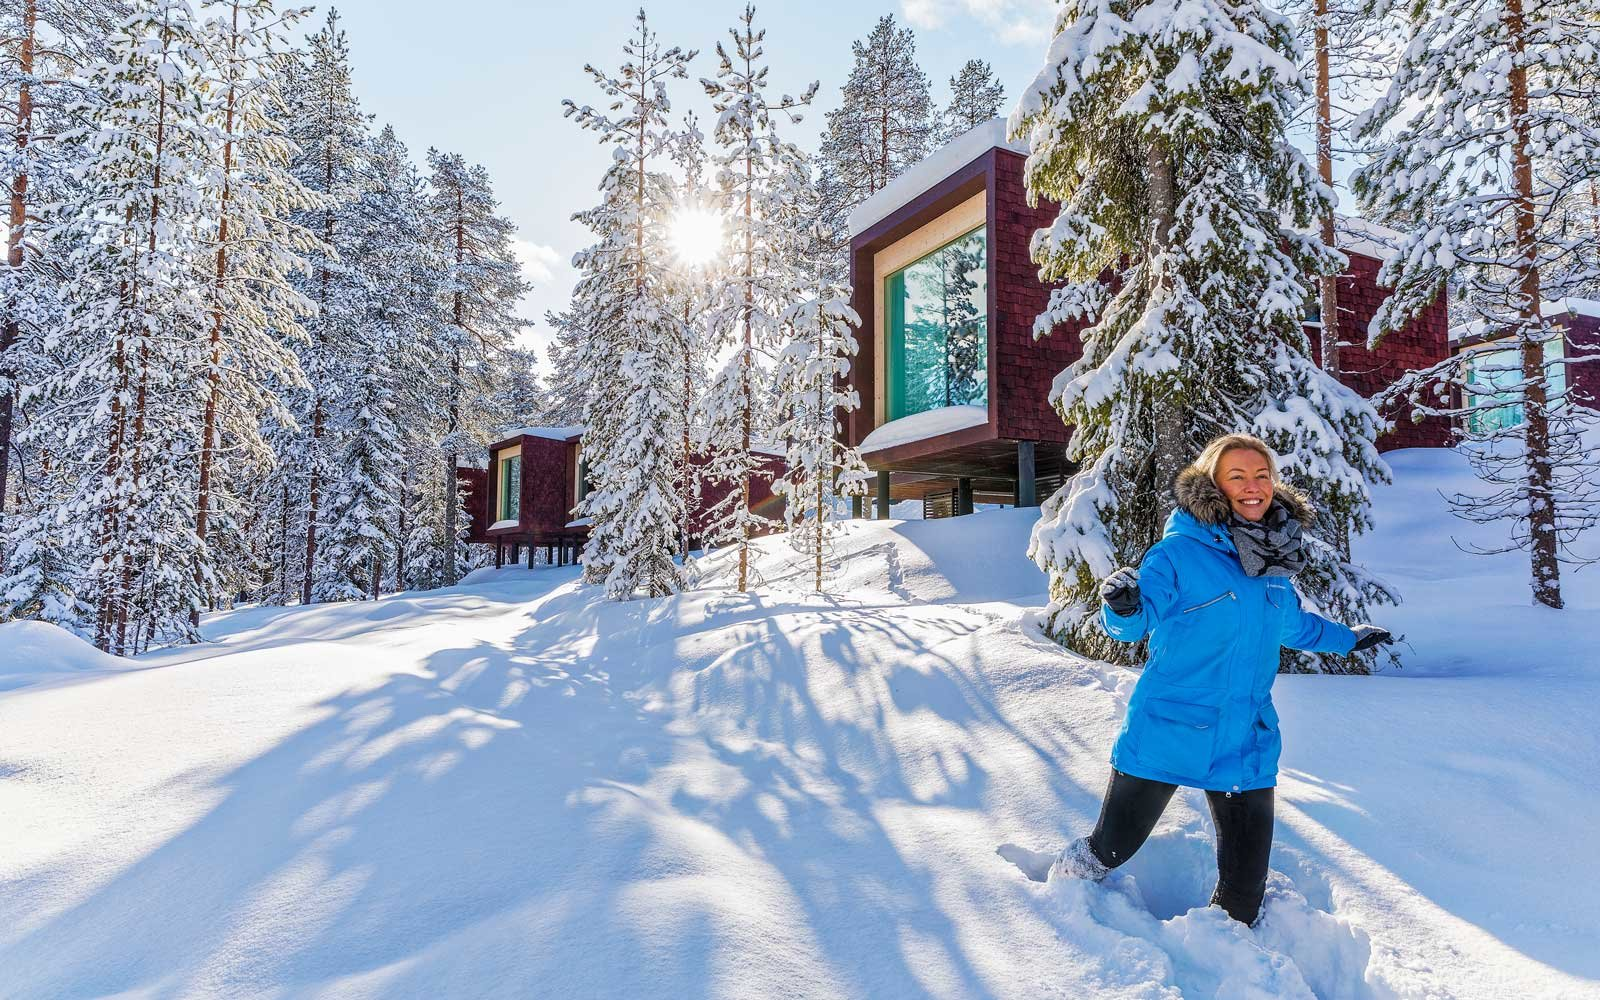 On the grounds of the Arctic TreeHouse Hotel, in Finland